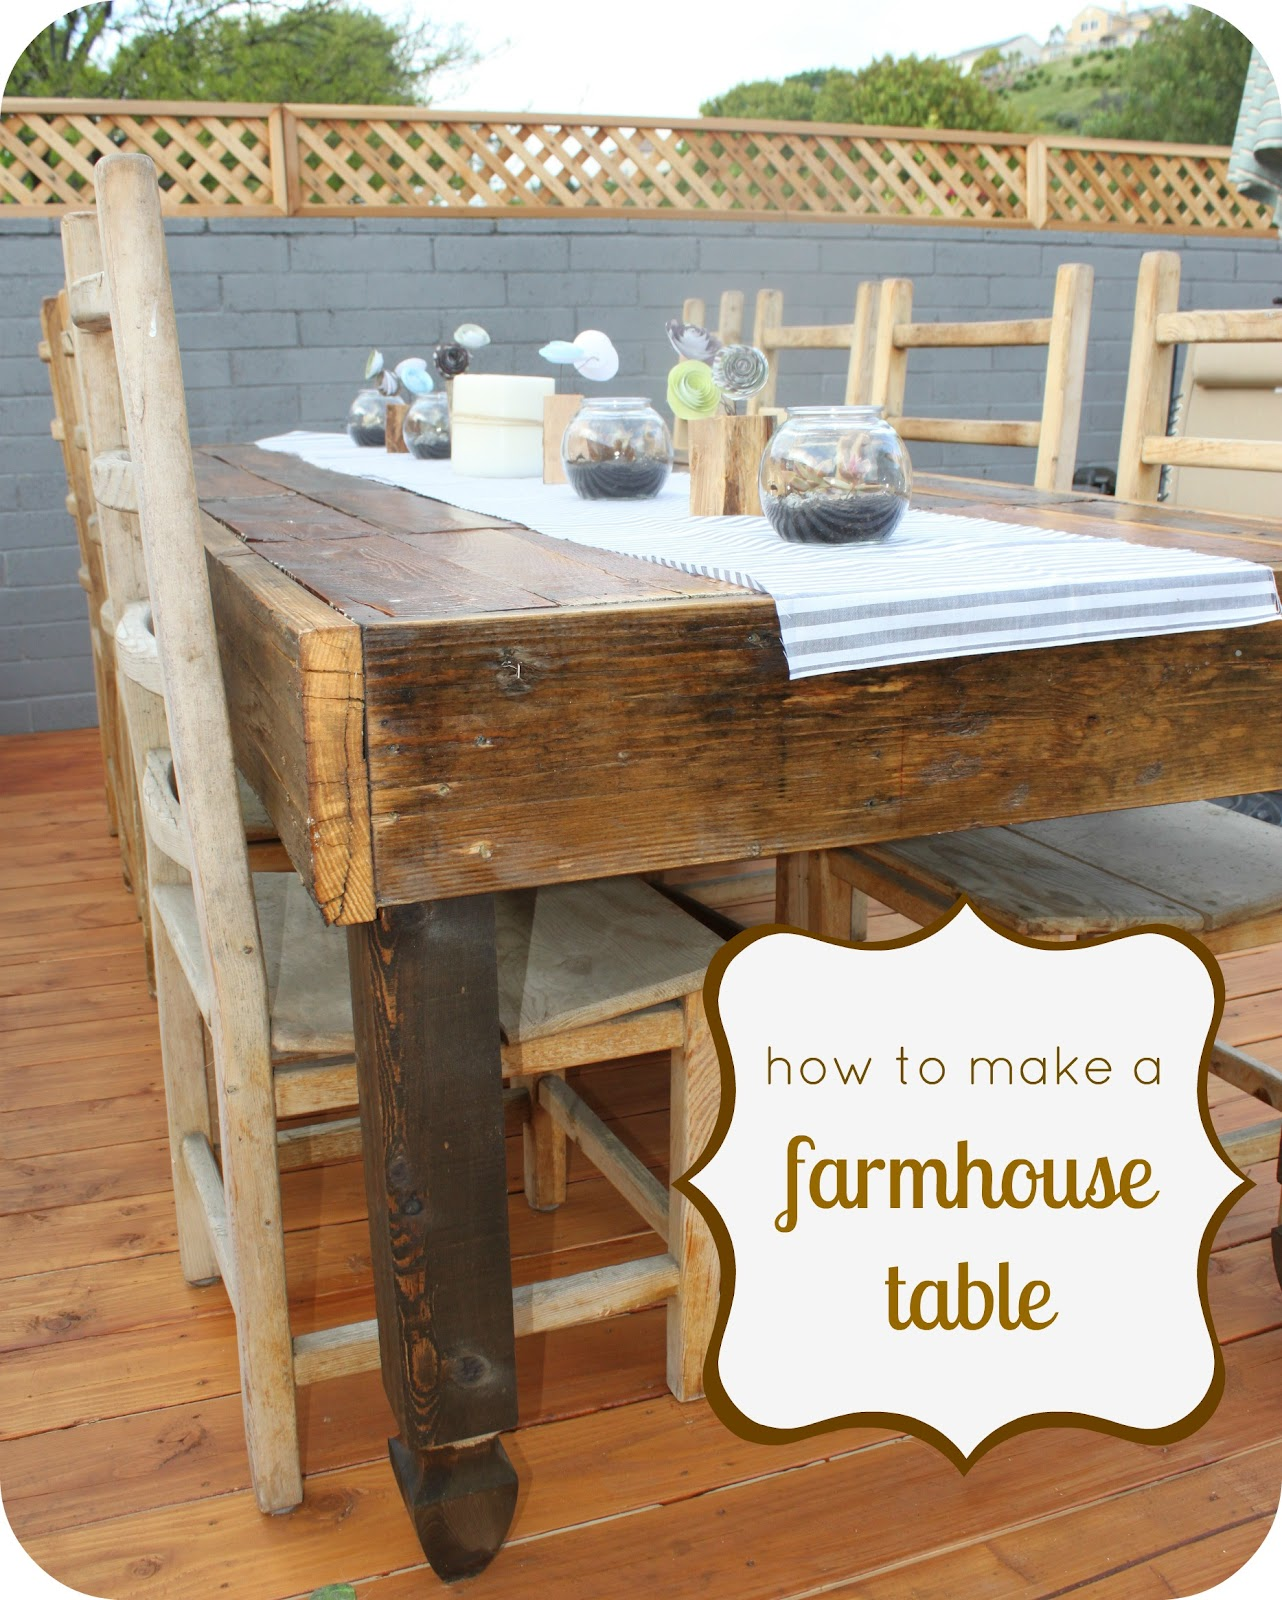 How to make a rustic farmhouse table How to build a farmhouse